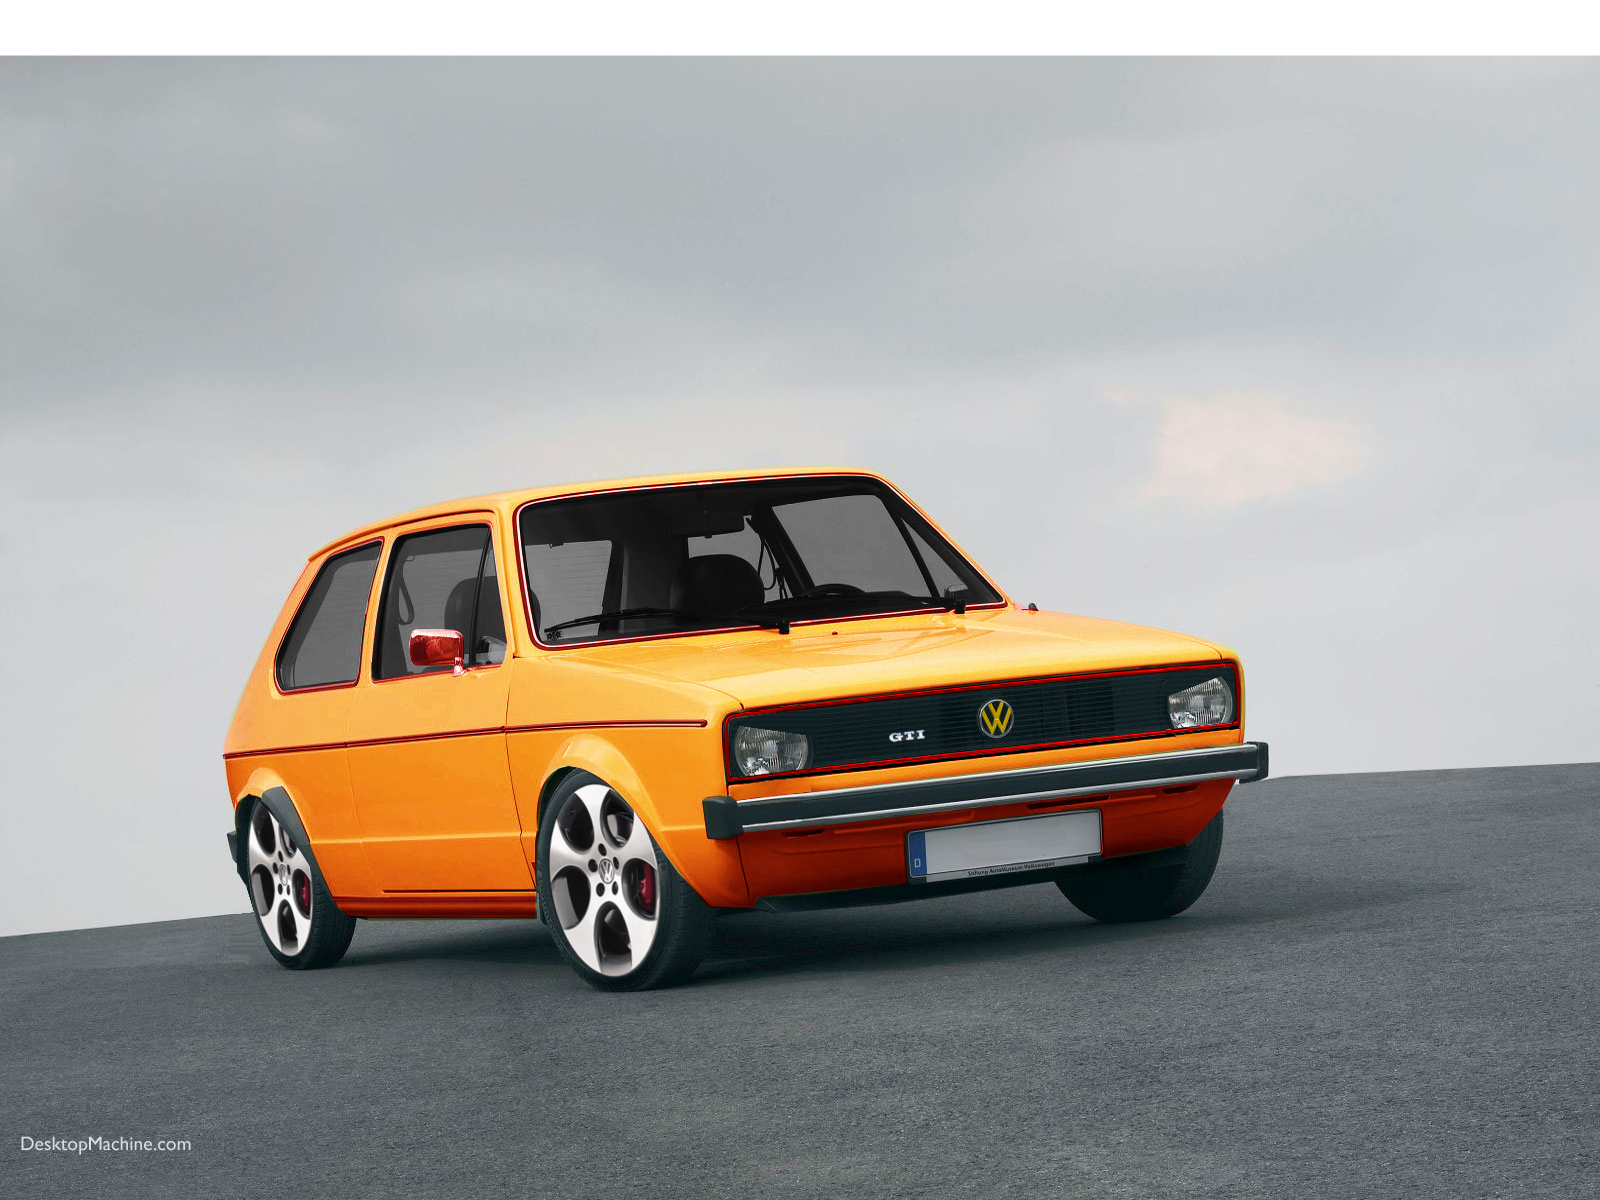 vw golf 1 gti technical details history photos on better parts ltd. Black Bedroom Furniture Sets. Home Design Ideas